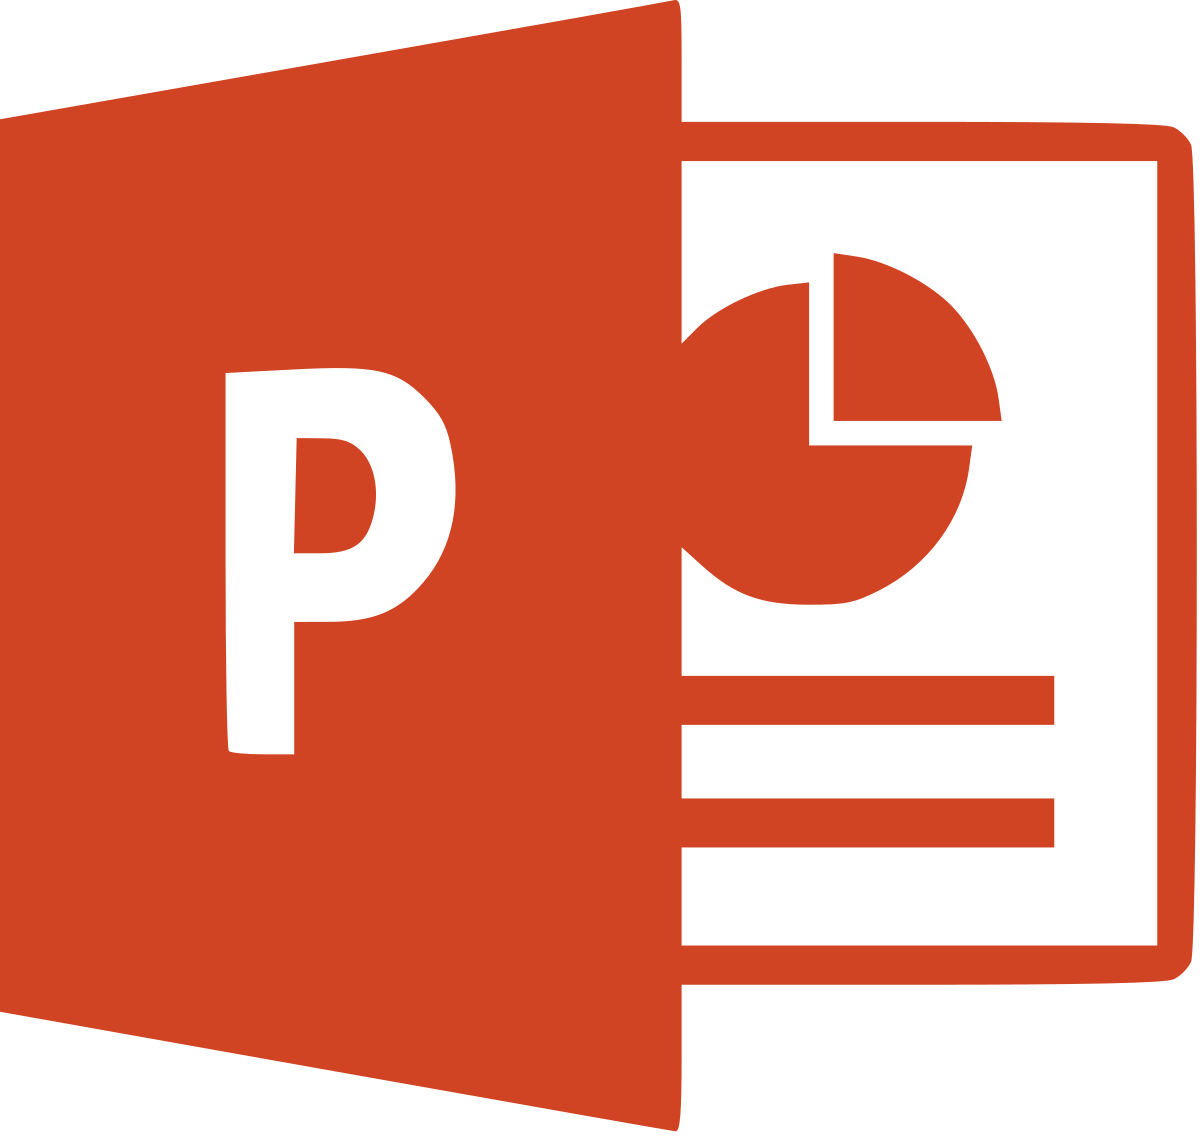 Road svg powerpoint. Microsoft wikipedia